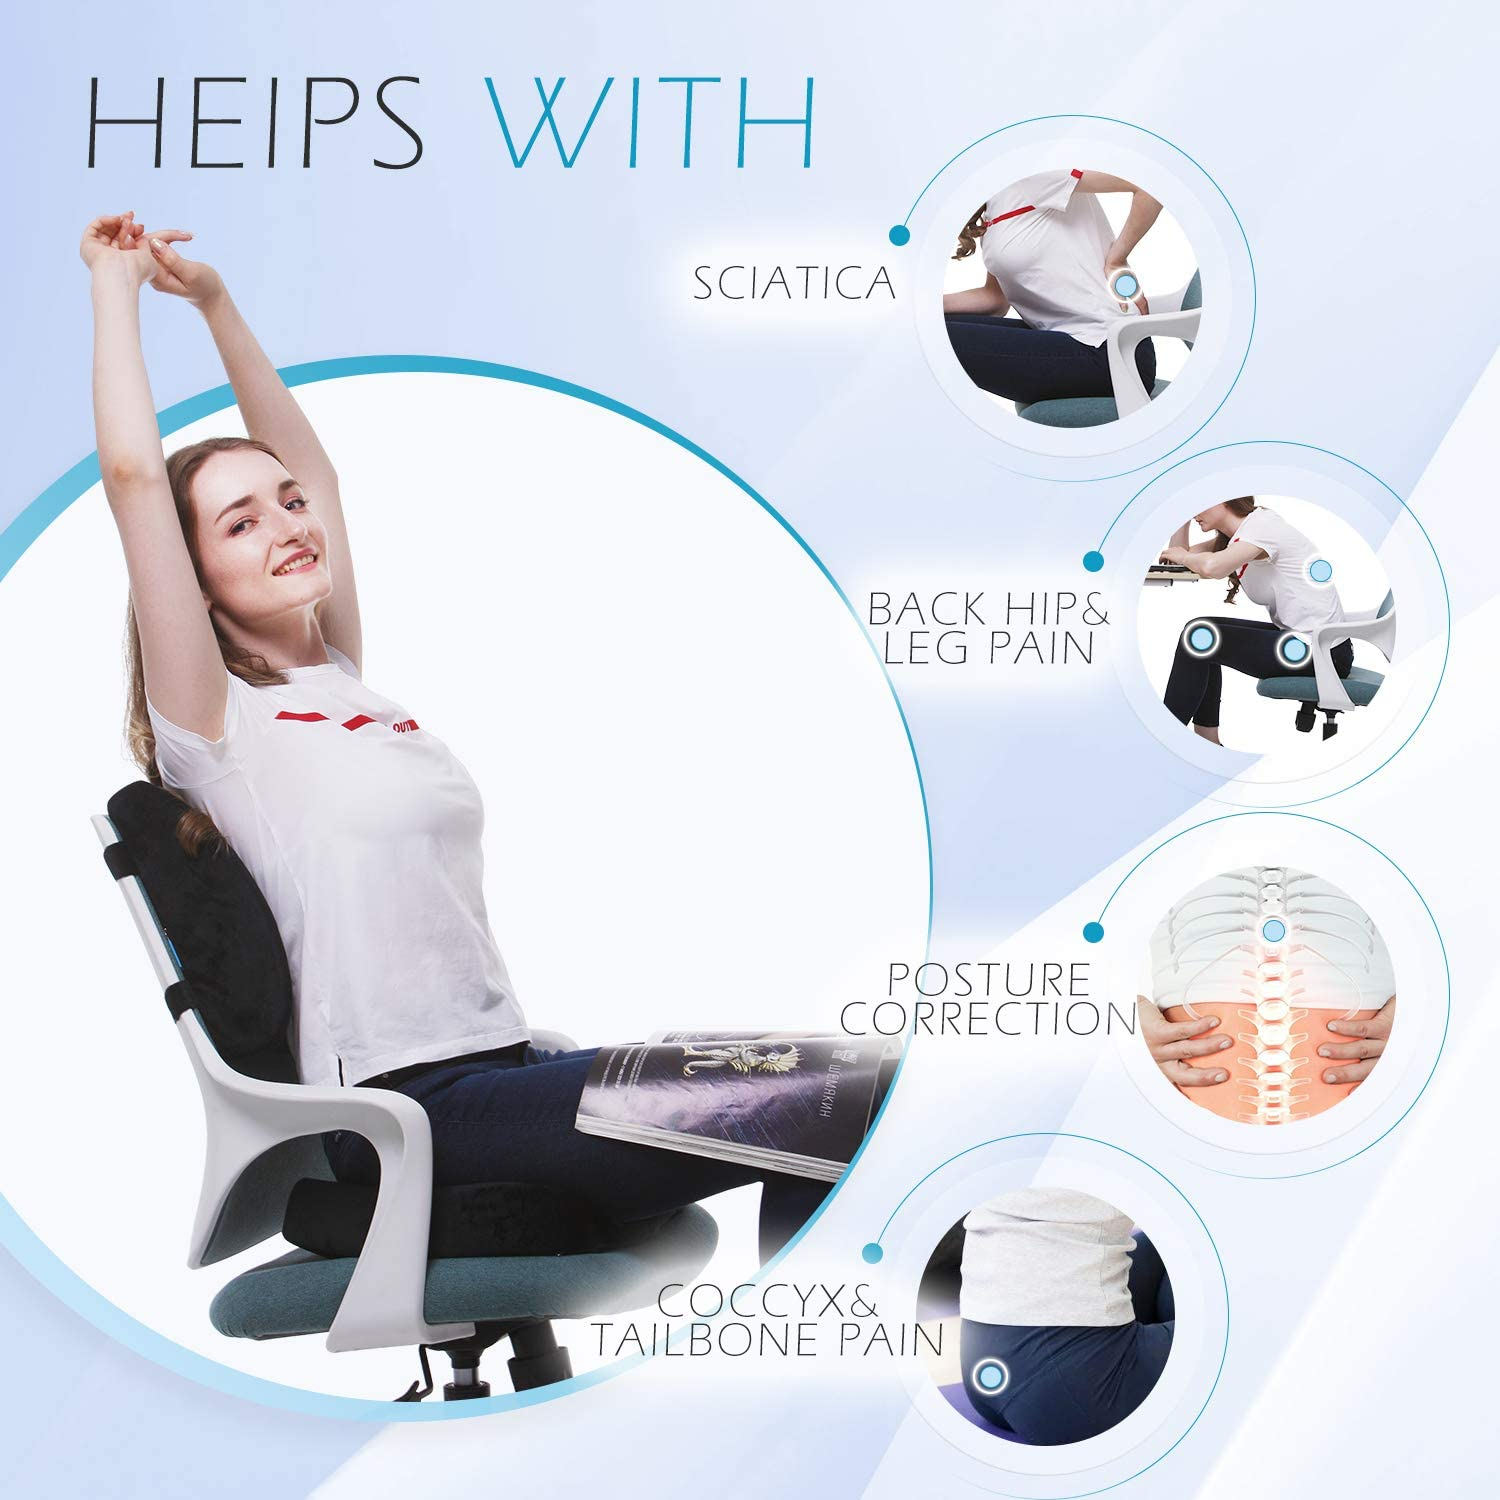 Amazon Com Coccyx Orthopedic Seat Cushion And Lumbar Support Pillow For Office Chair Memory Foam Car Seat Cushion With Washable Cover Ergonomic Desk Chair Cushion For Tailbone Lower Back Pain Sciatica Relief Furniture